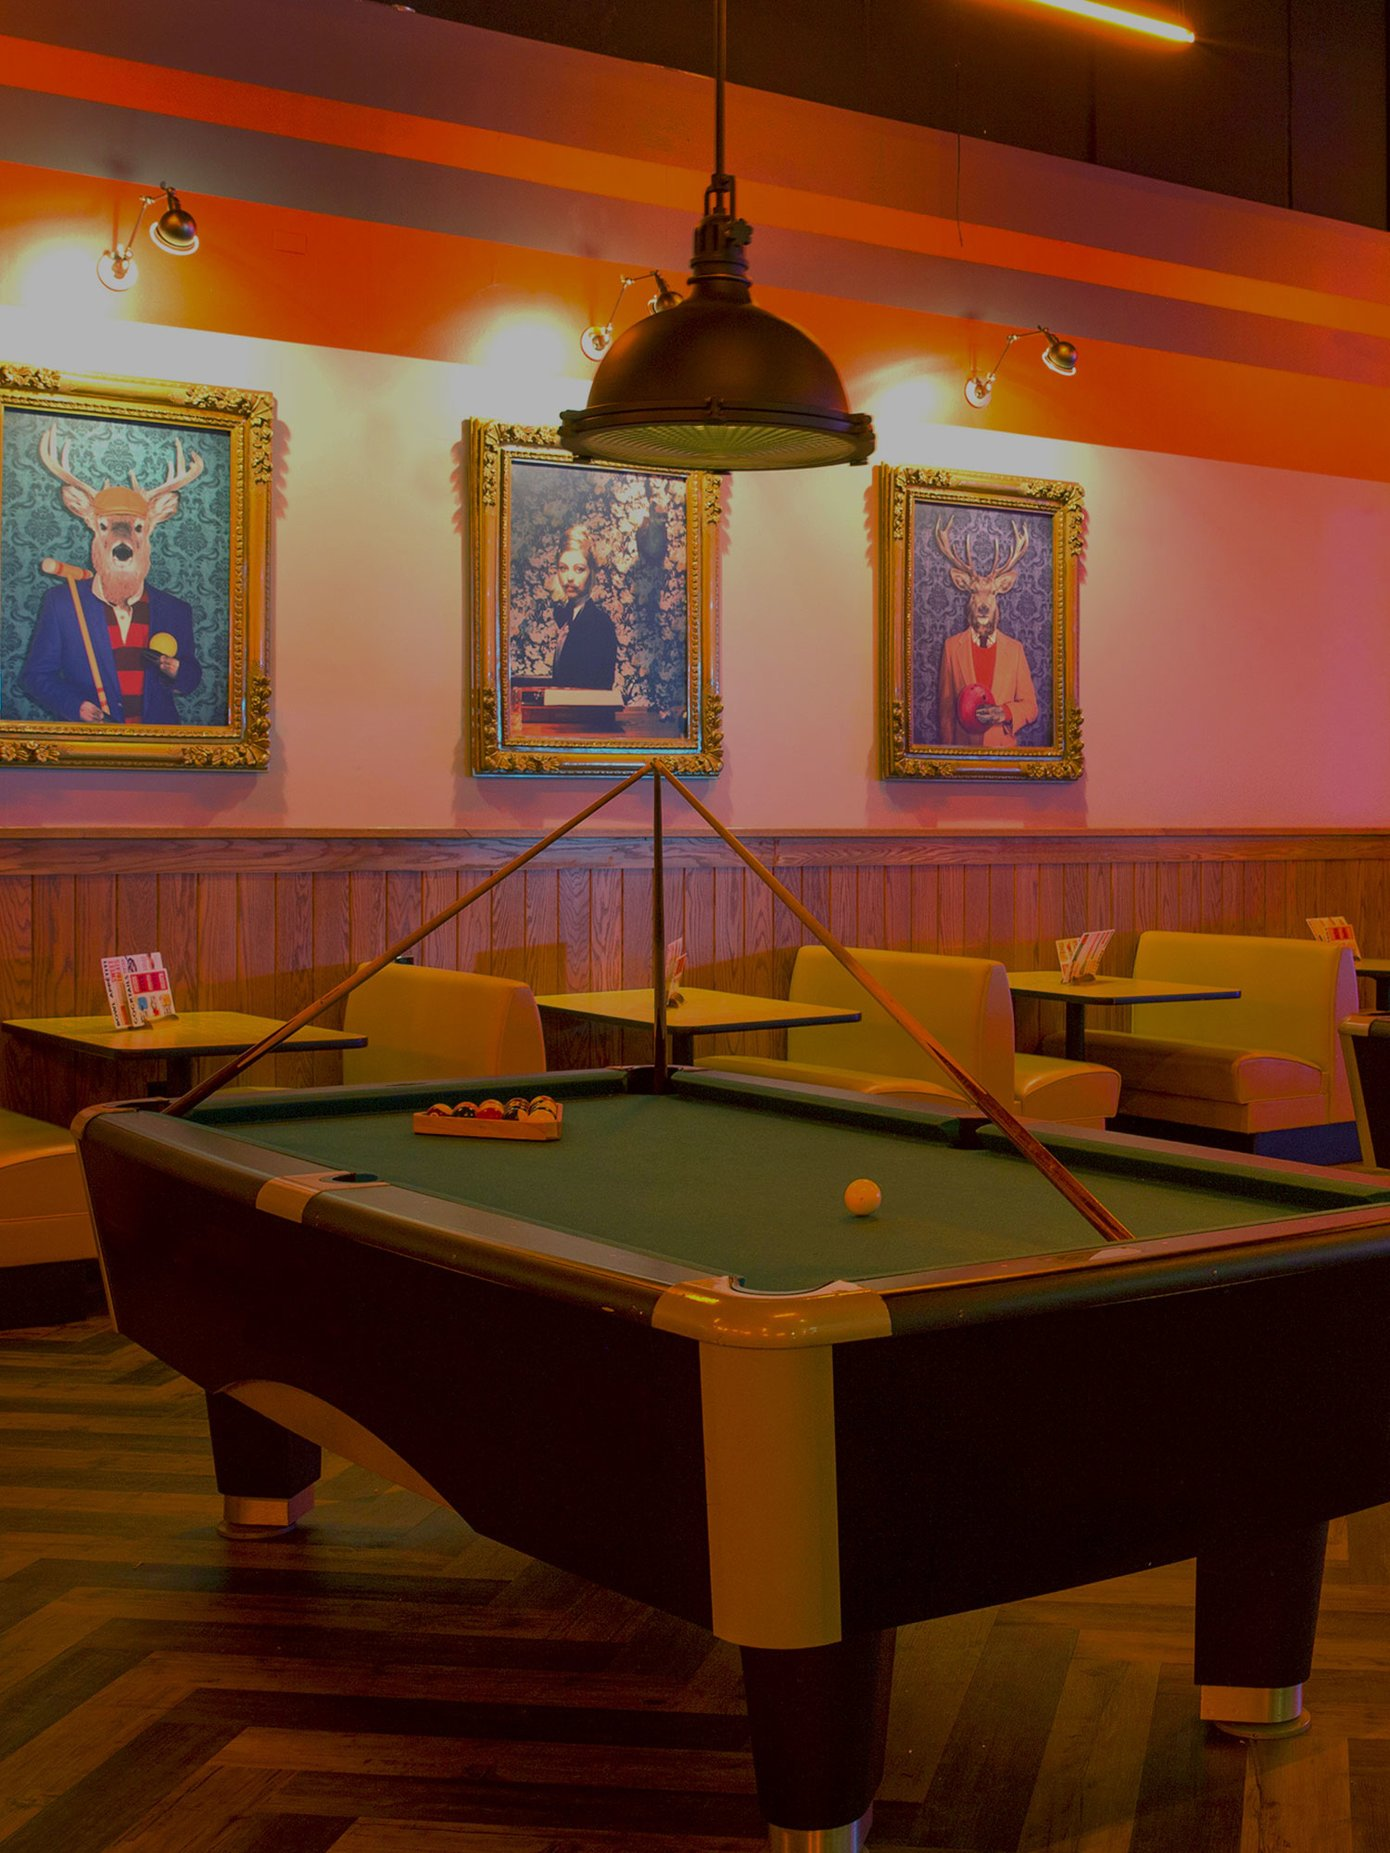 Pool table at Bowlero St. Peters